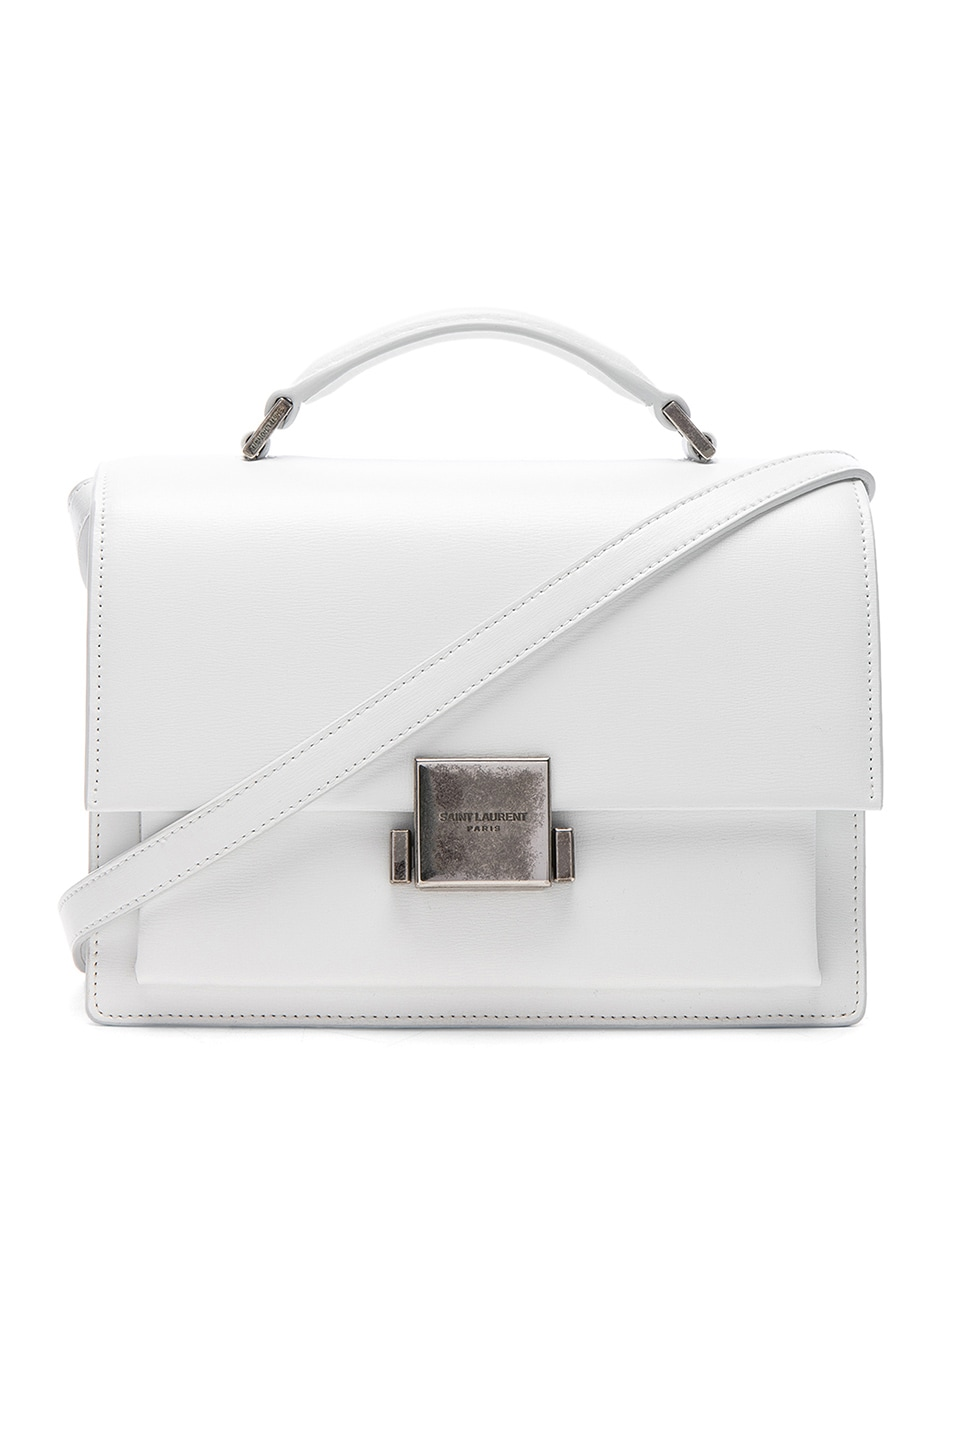 Image 1 of Saint Laurent Medium Bellechasse Schoolbag in Optic White